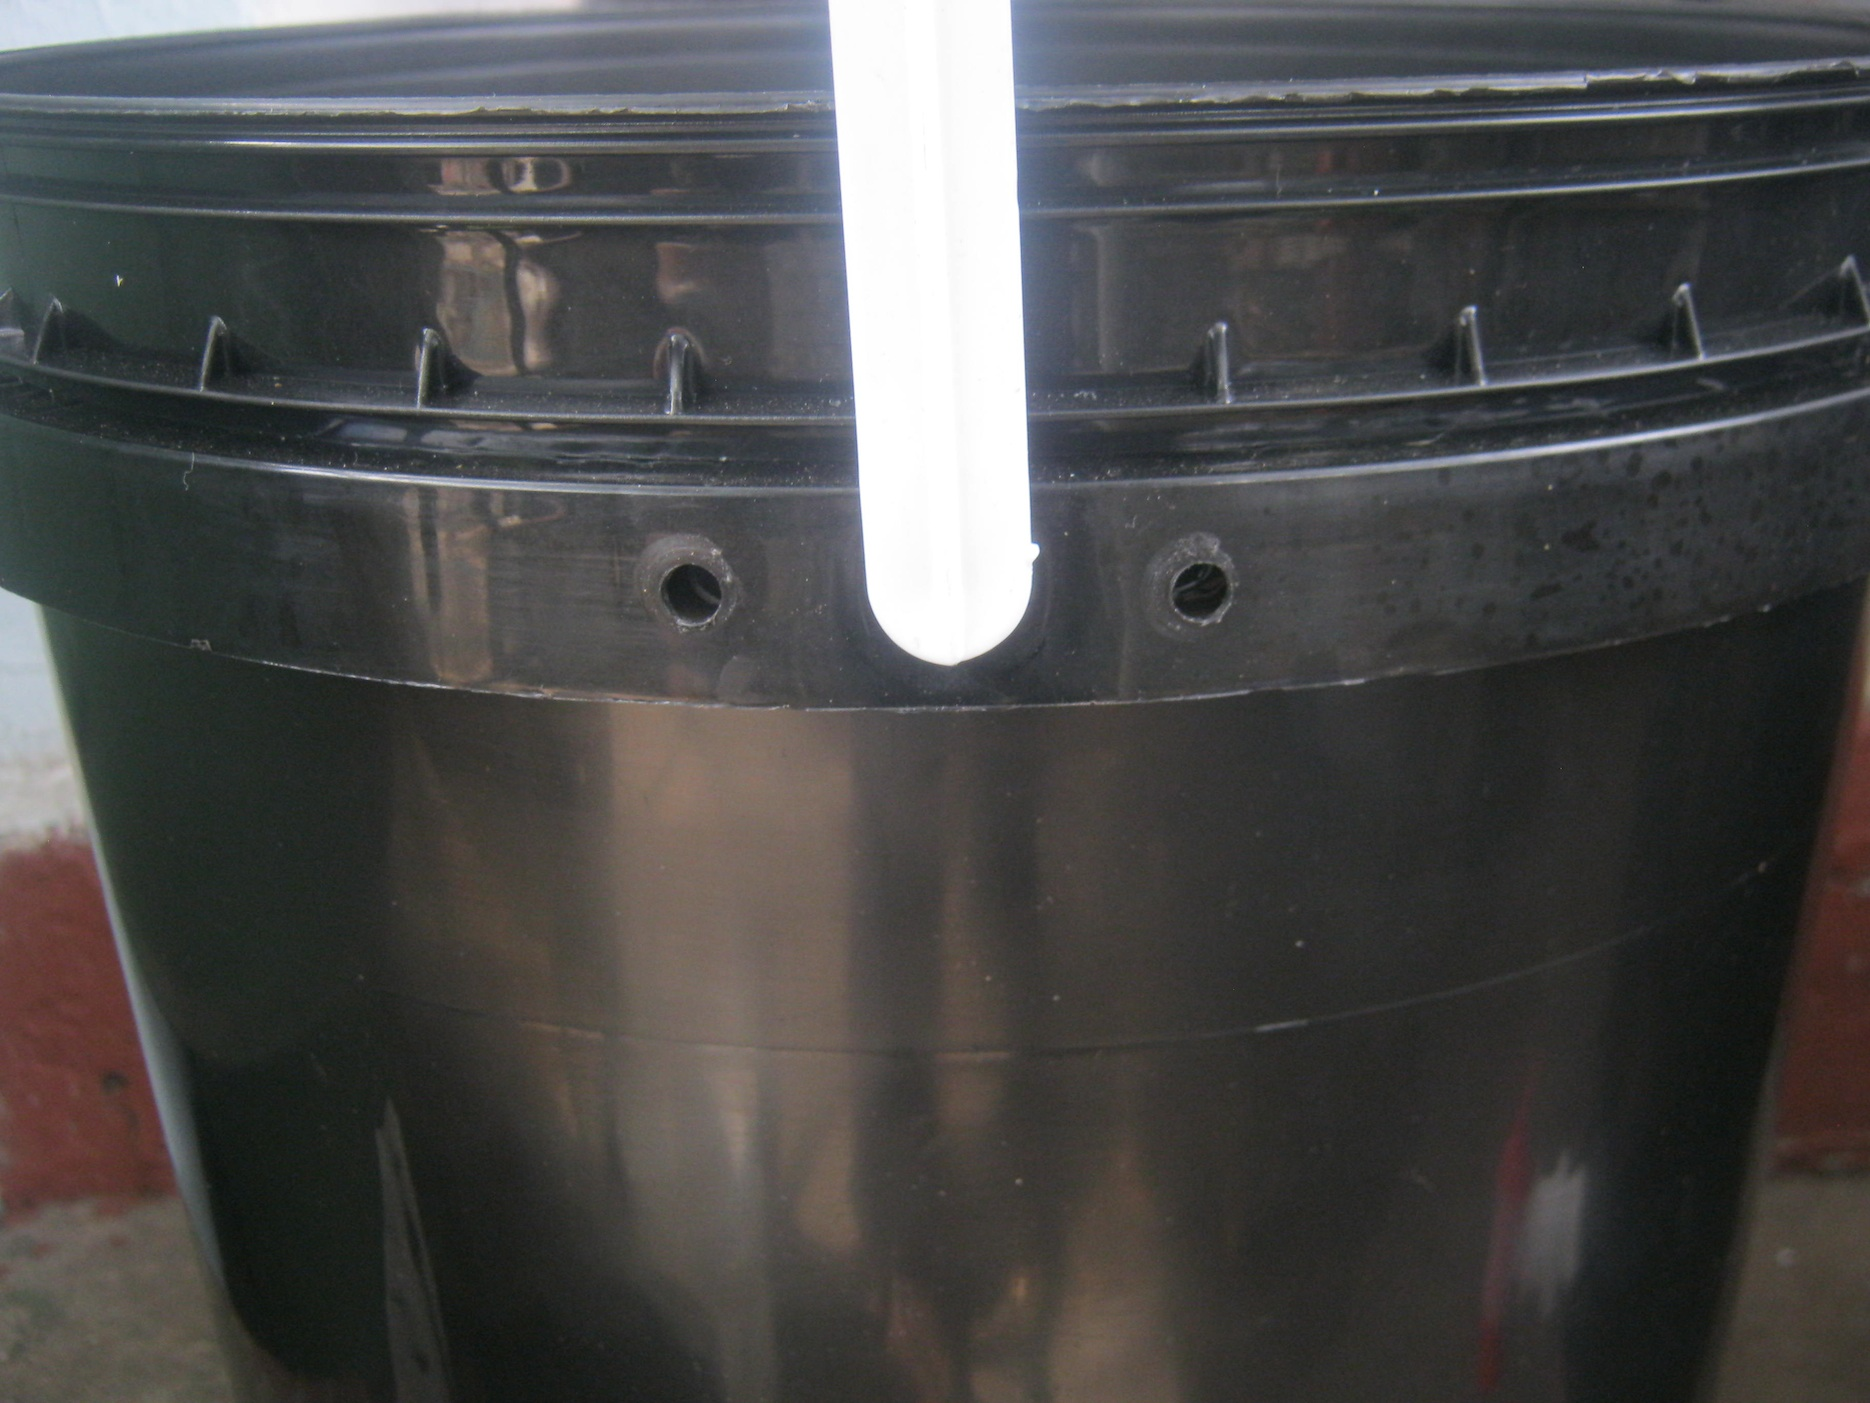 Working bin of a worm farm with 2 ventilation holes near the top of its side